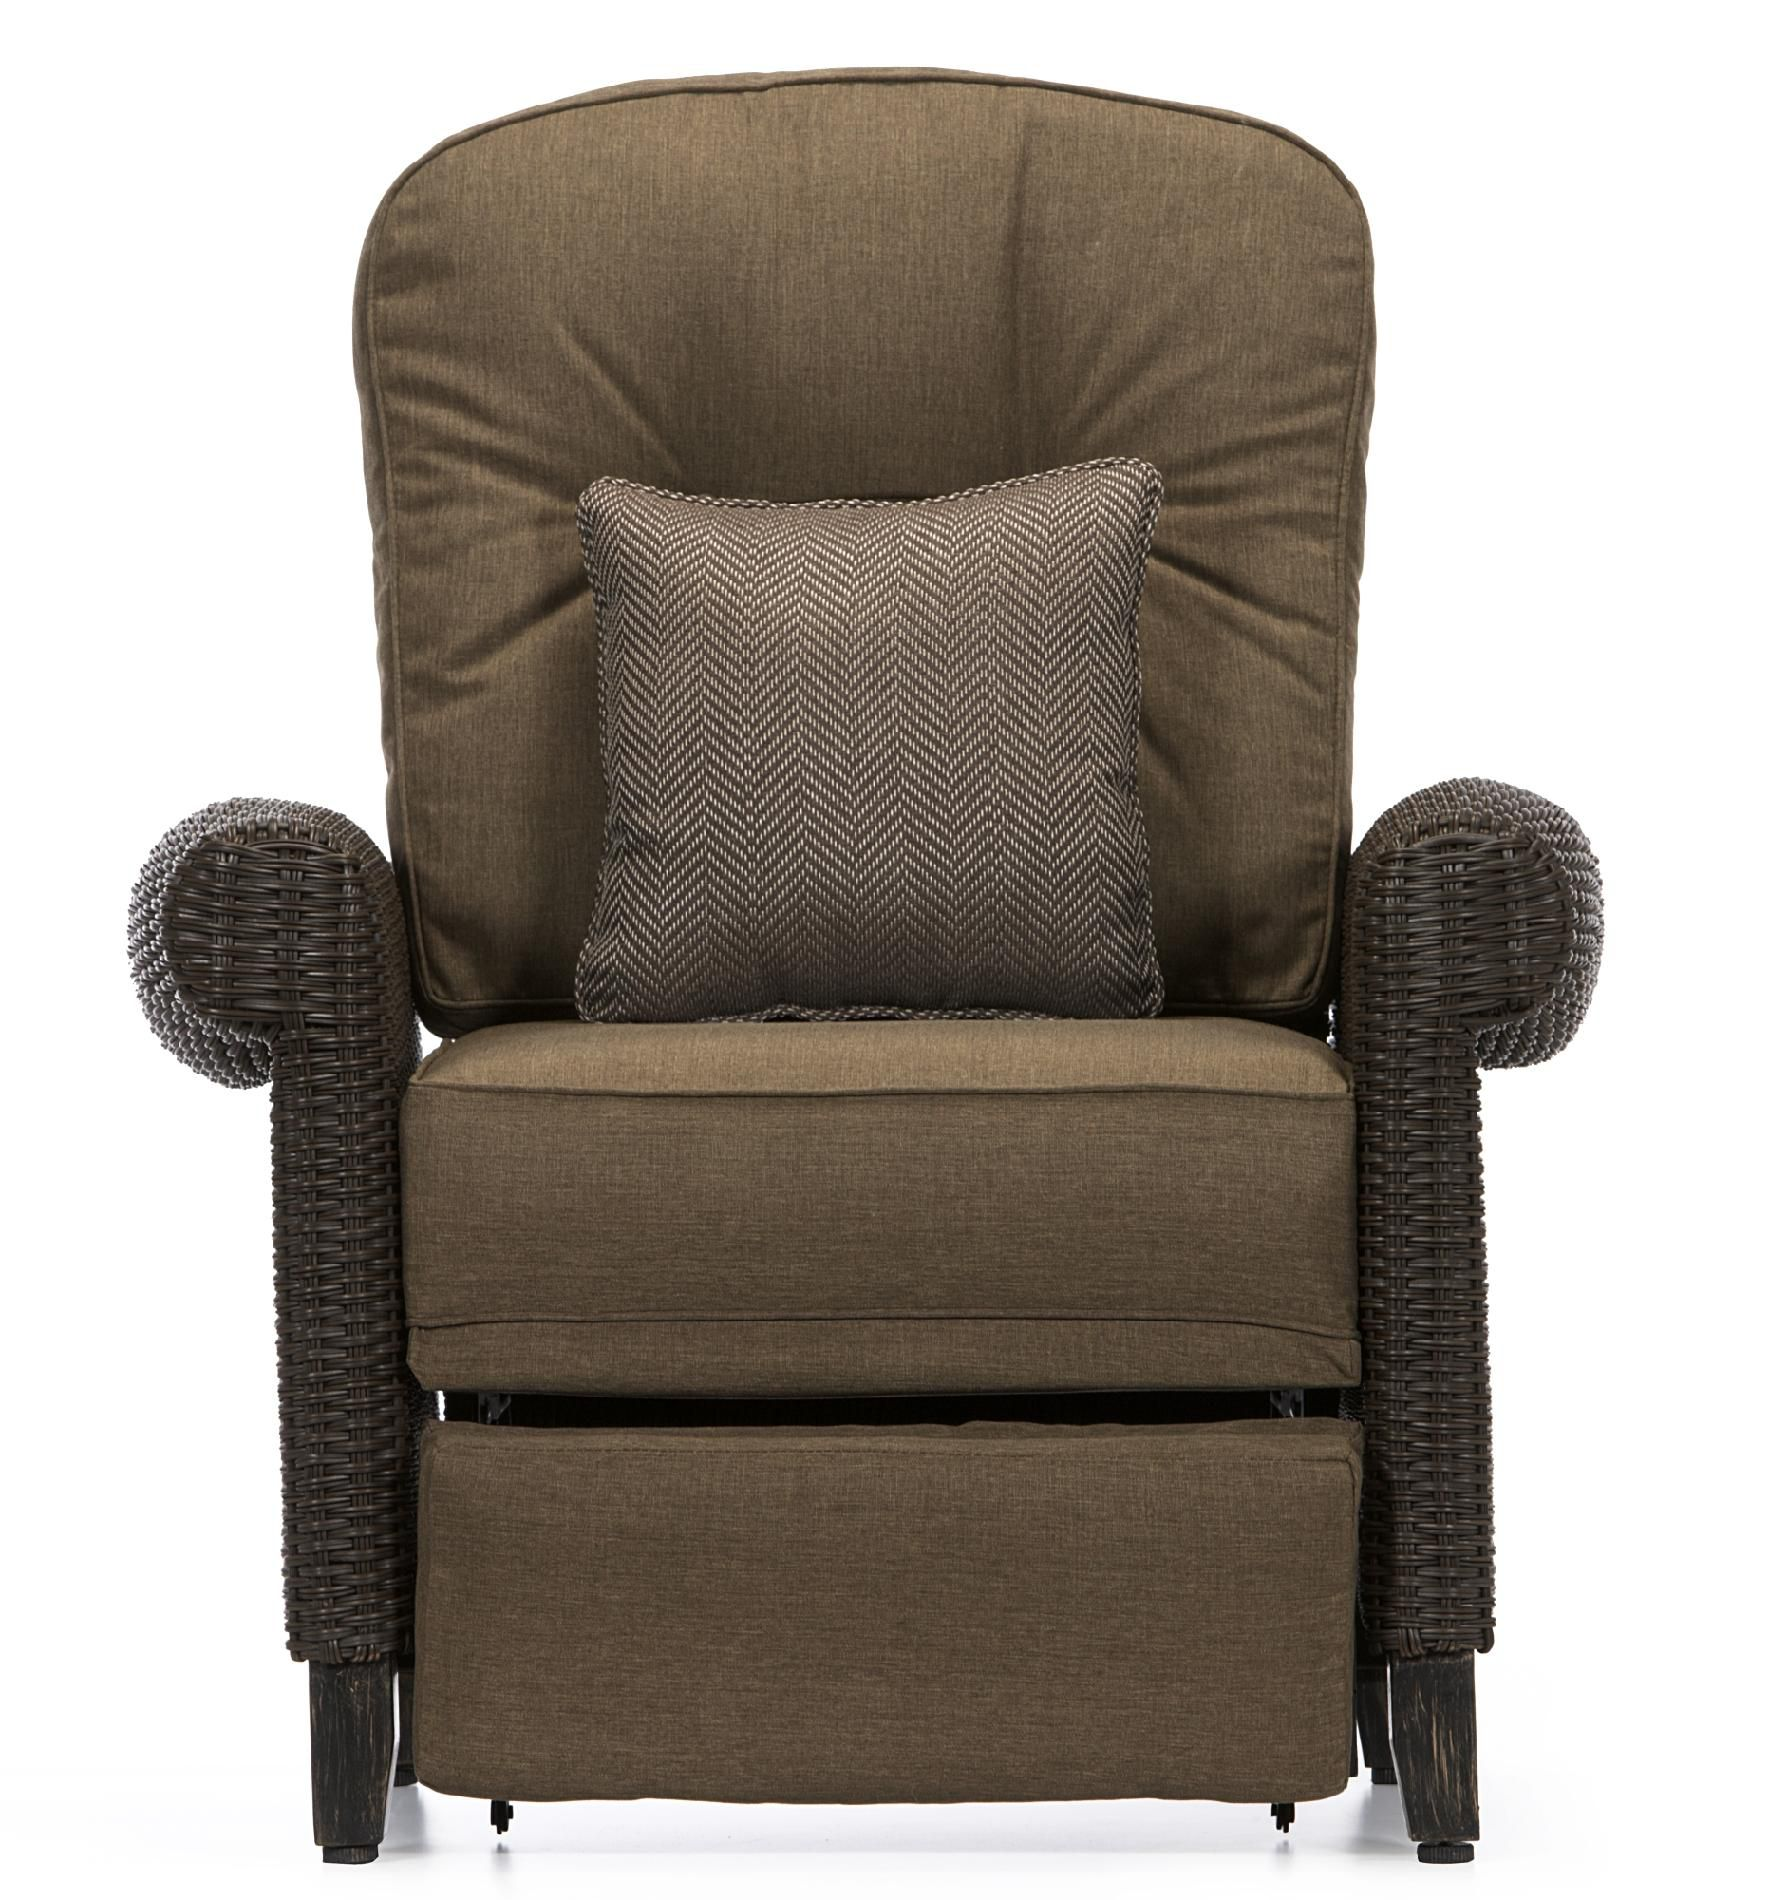 La-Z-Boy Outdoor Maddox Recliner